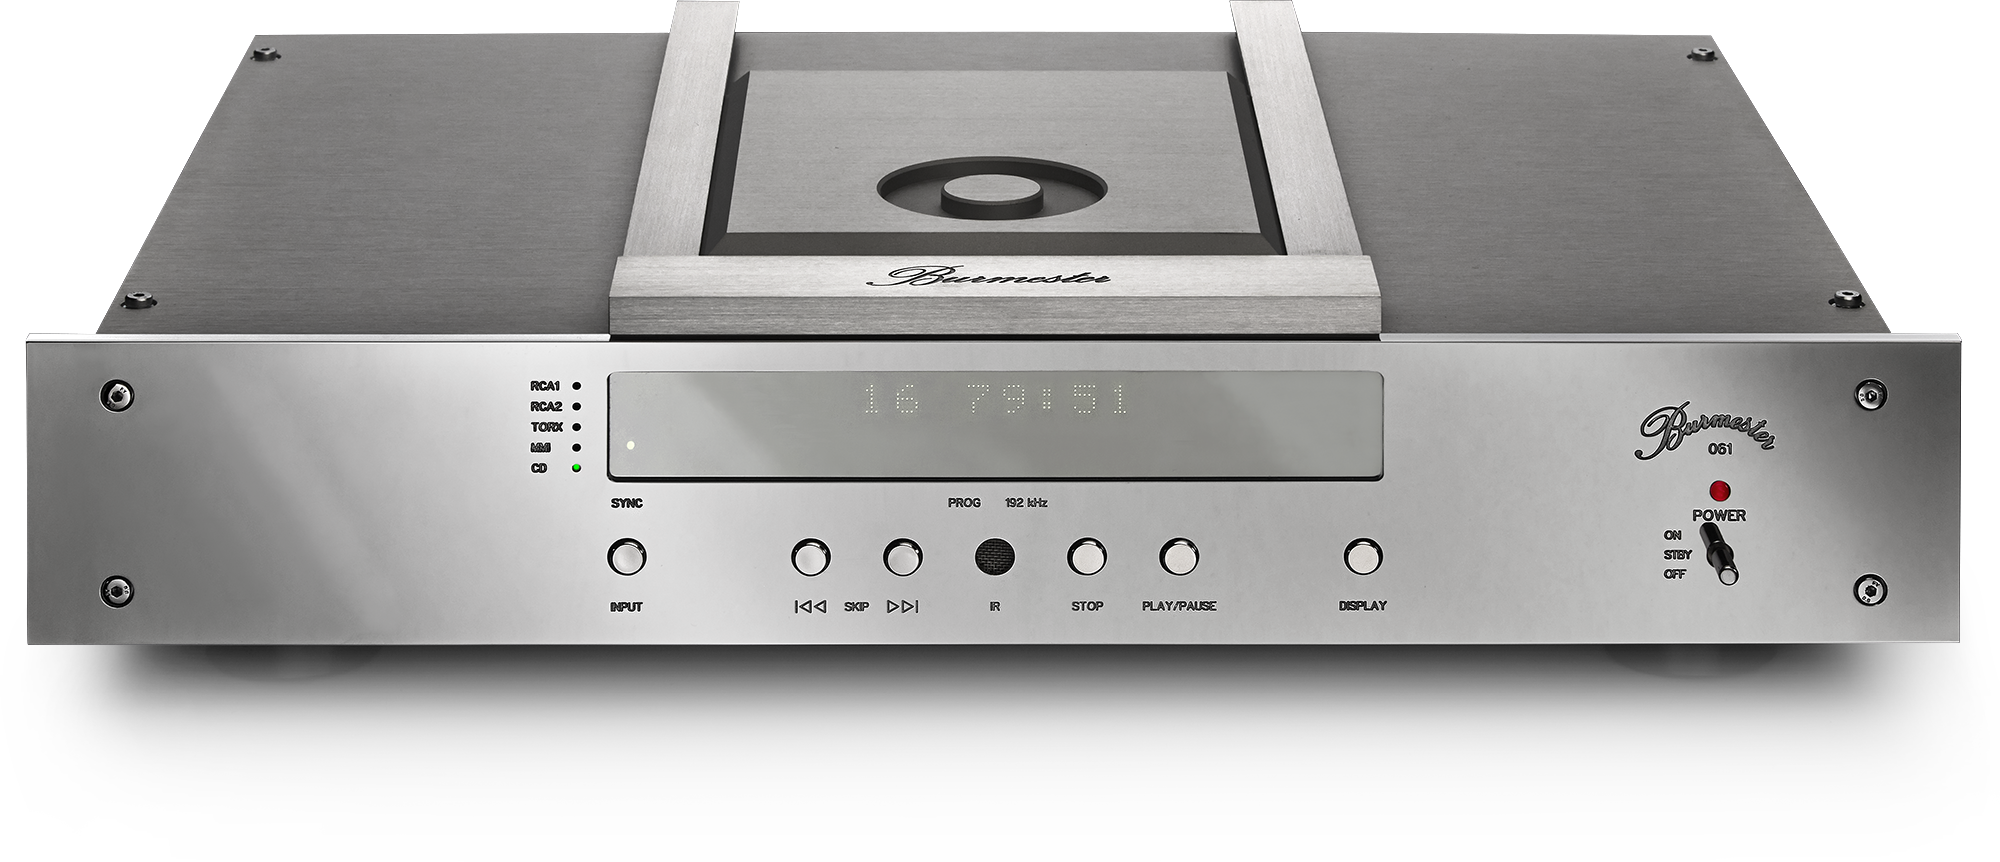 burmester 061 cdplayer highendaudio cdplayer electronics. Black Bedroom Furniture Sets. Home Design Ideas